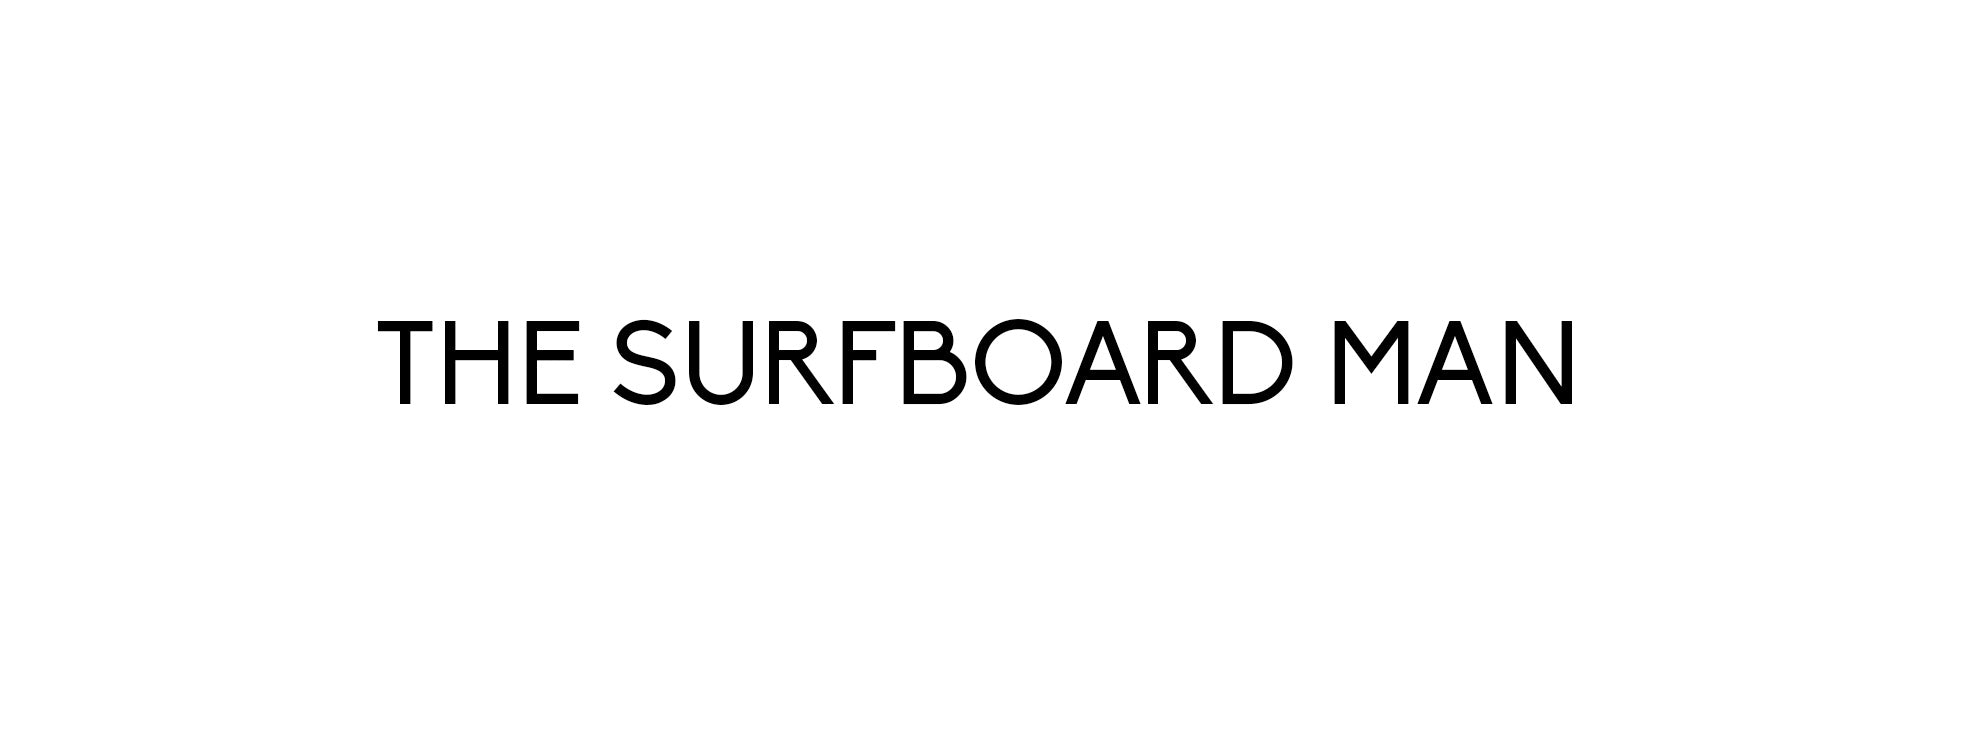 The surfboard man